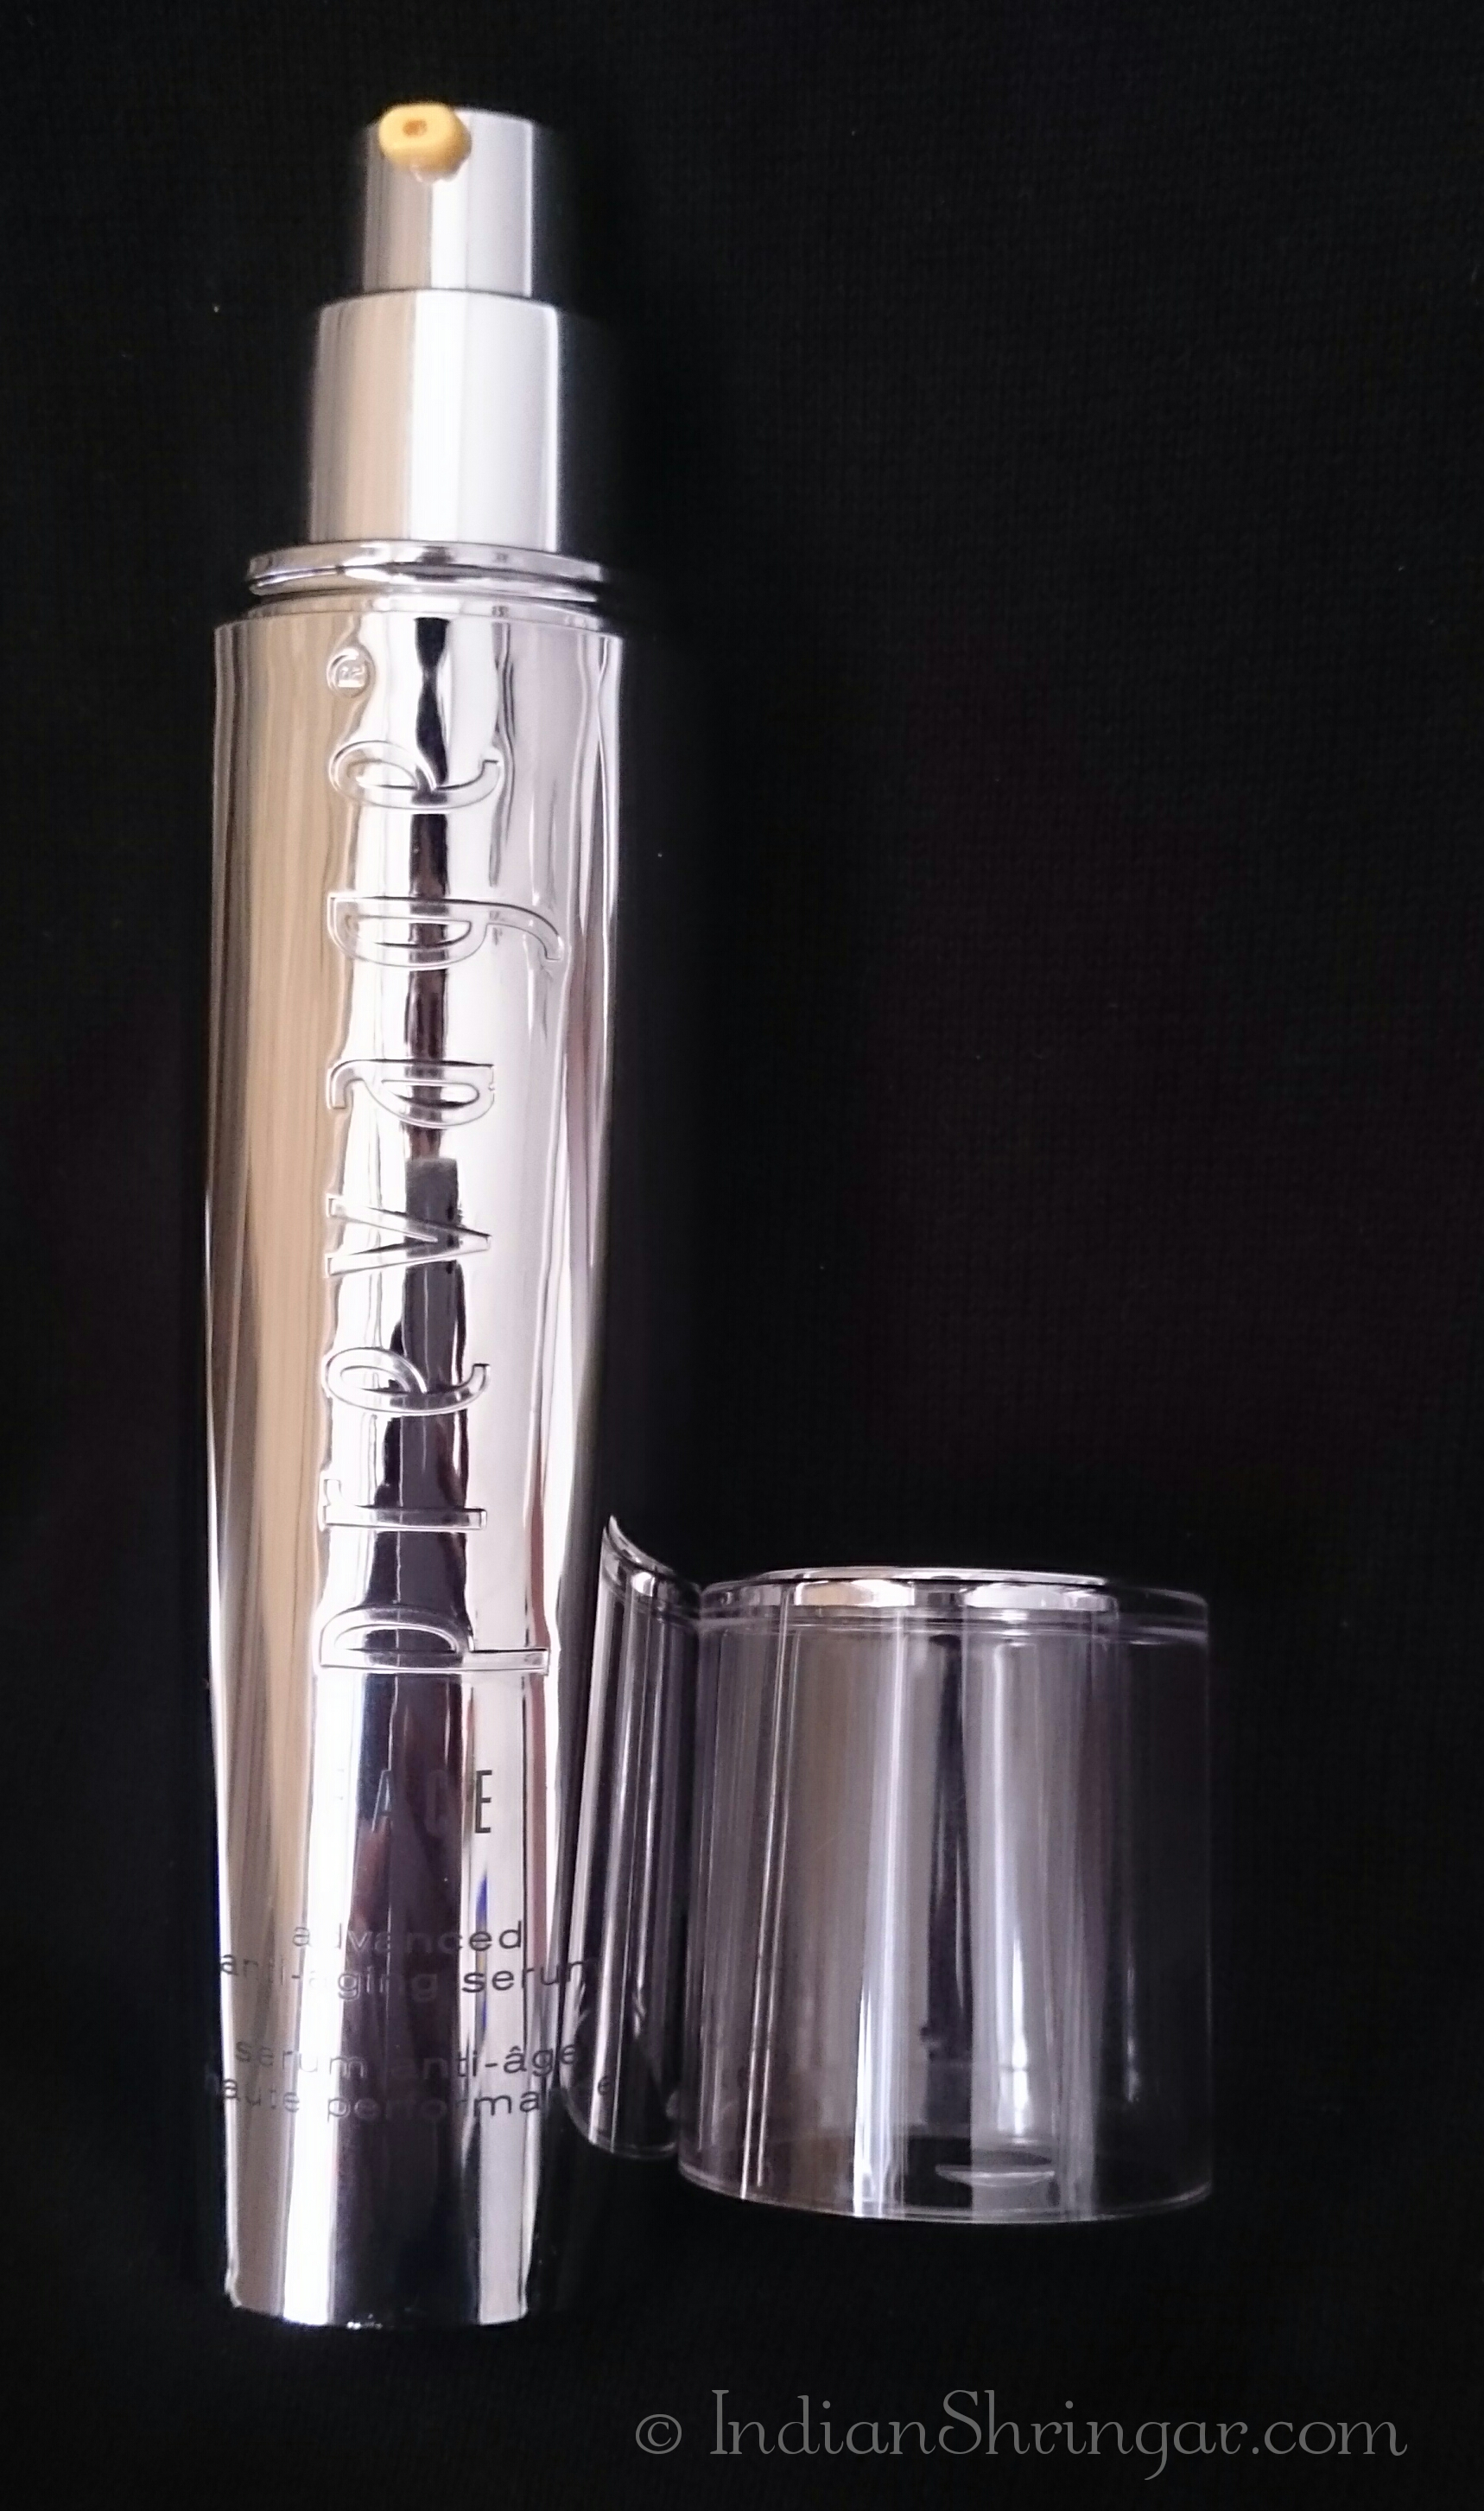 Elizabeth Arden Prevage Anti-Aging Serum Review